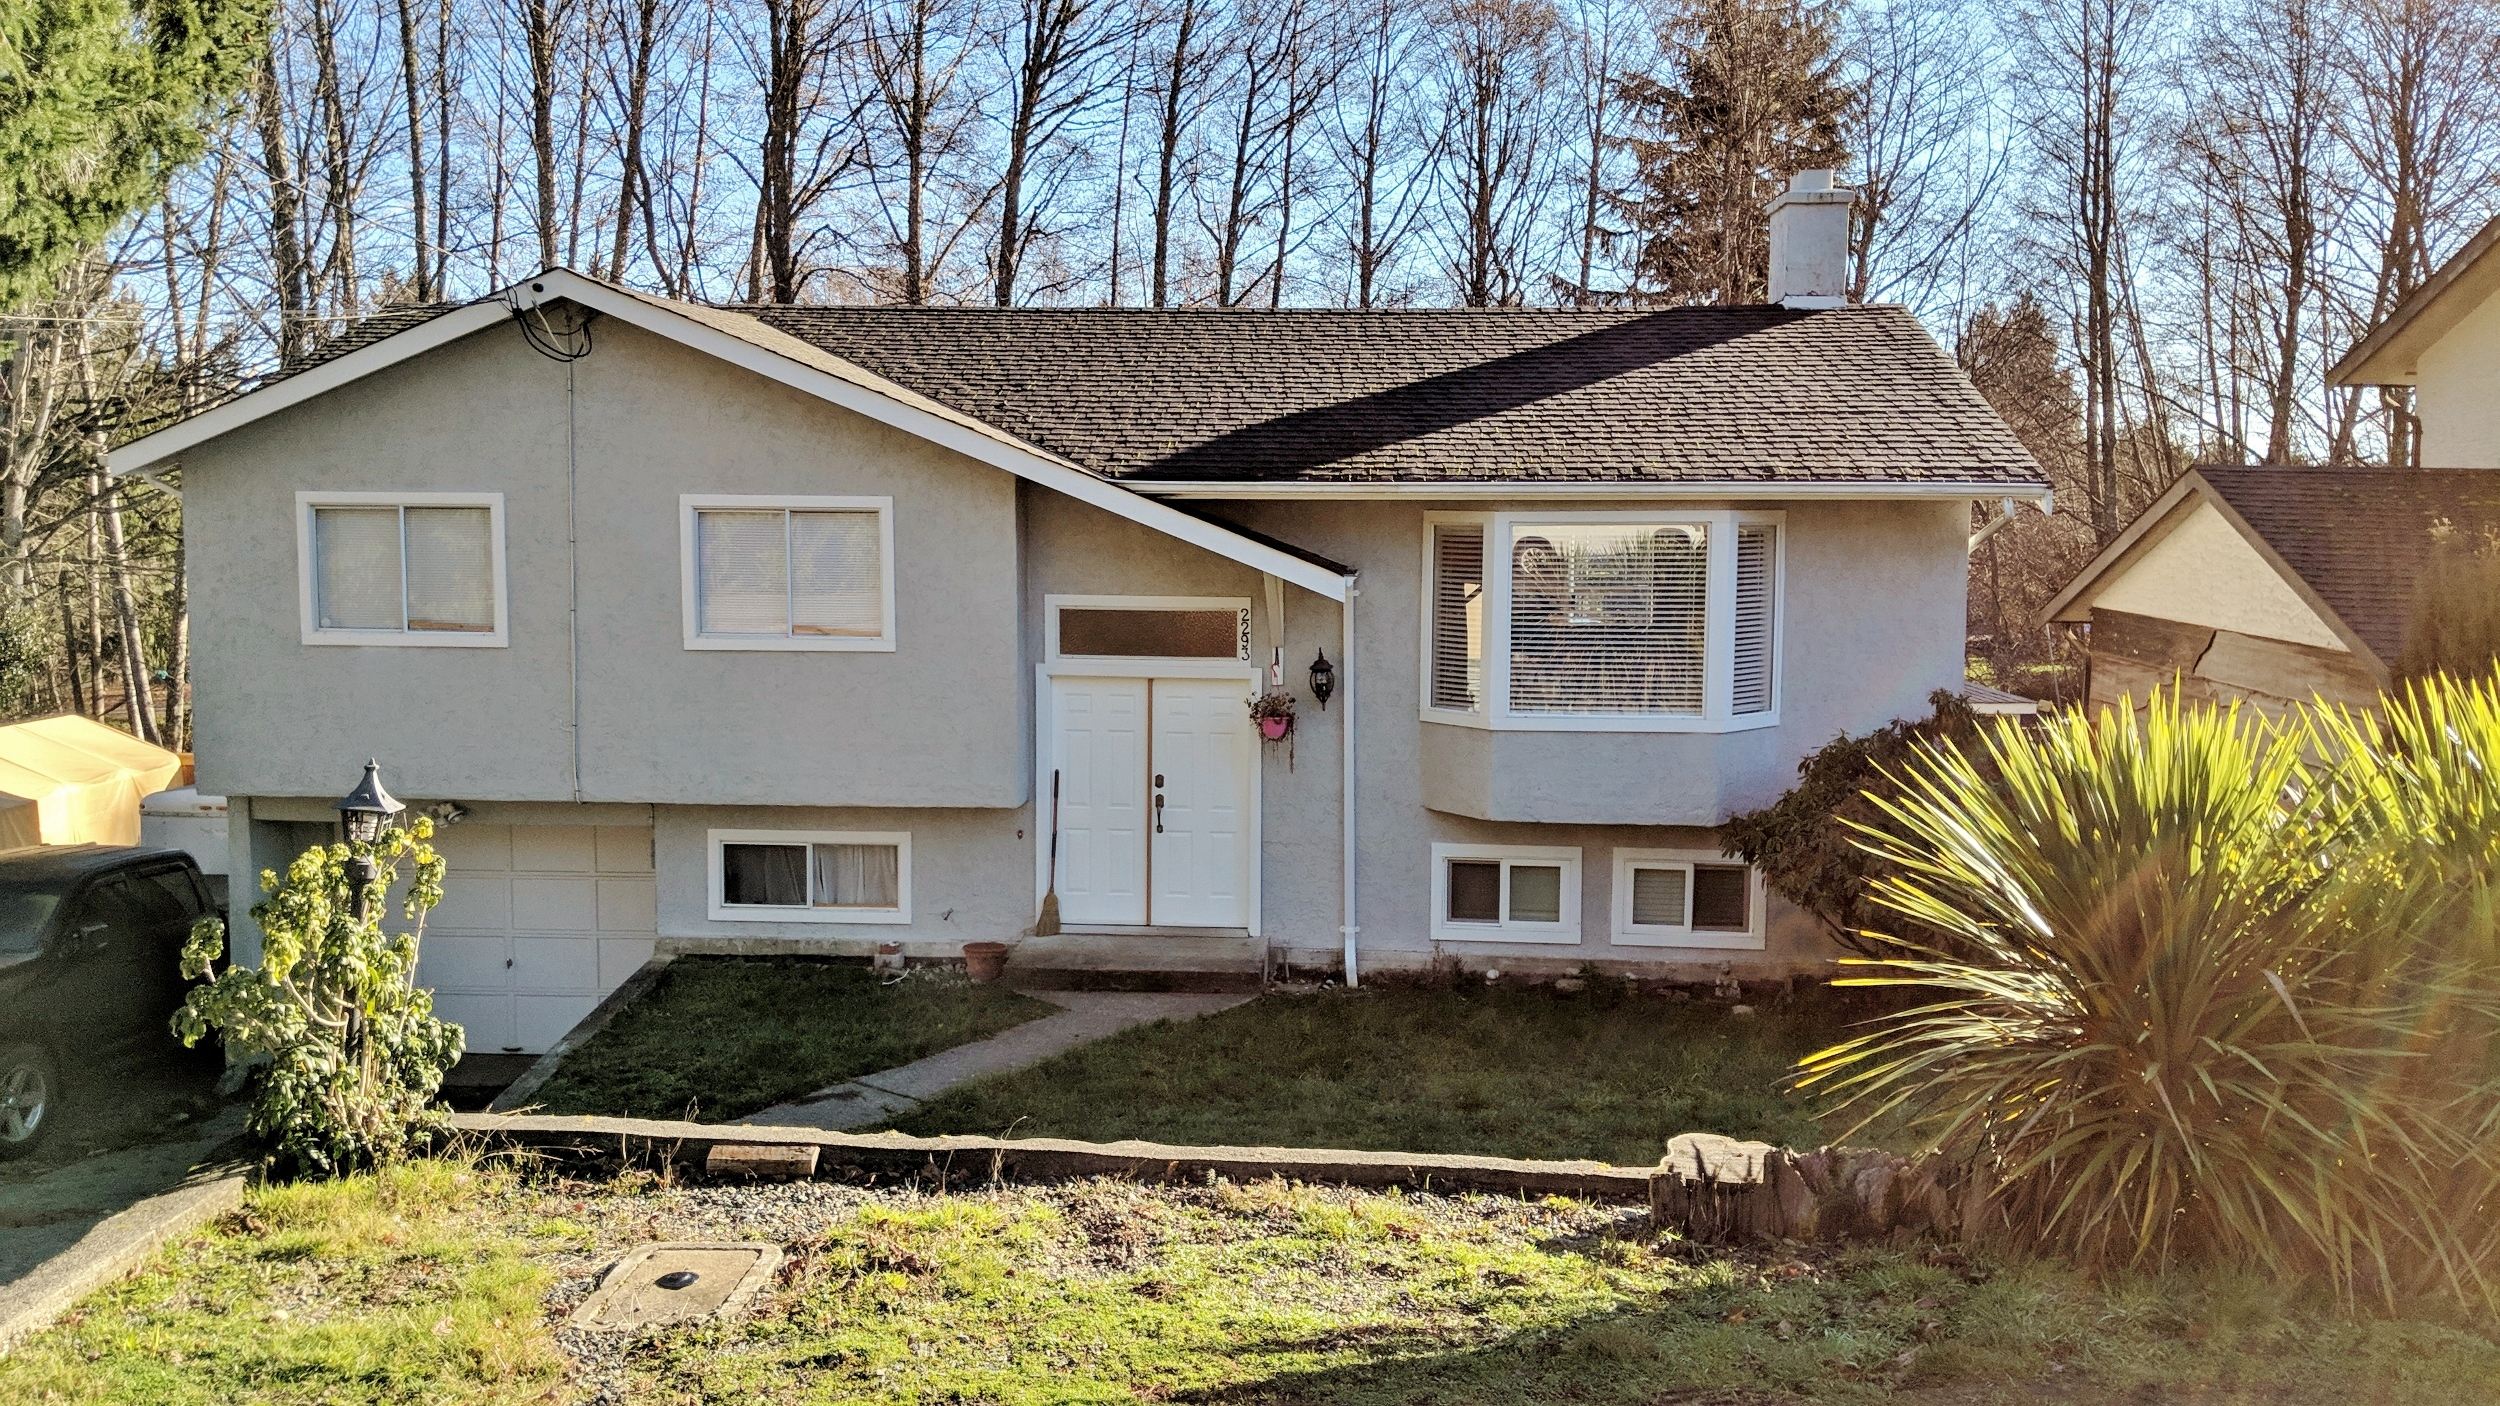 Updated Family Home on a Quarter Acre Lot in Sooke! 5 beds, 3 baths, 2050 sqft